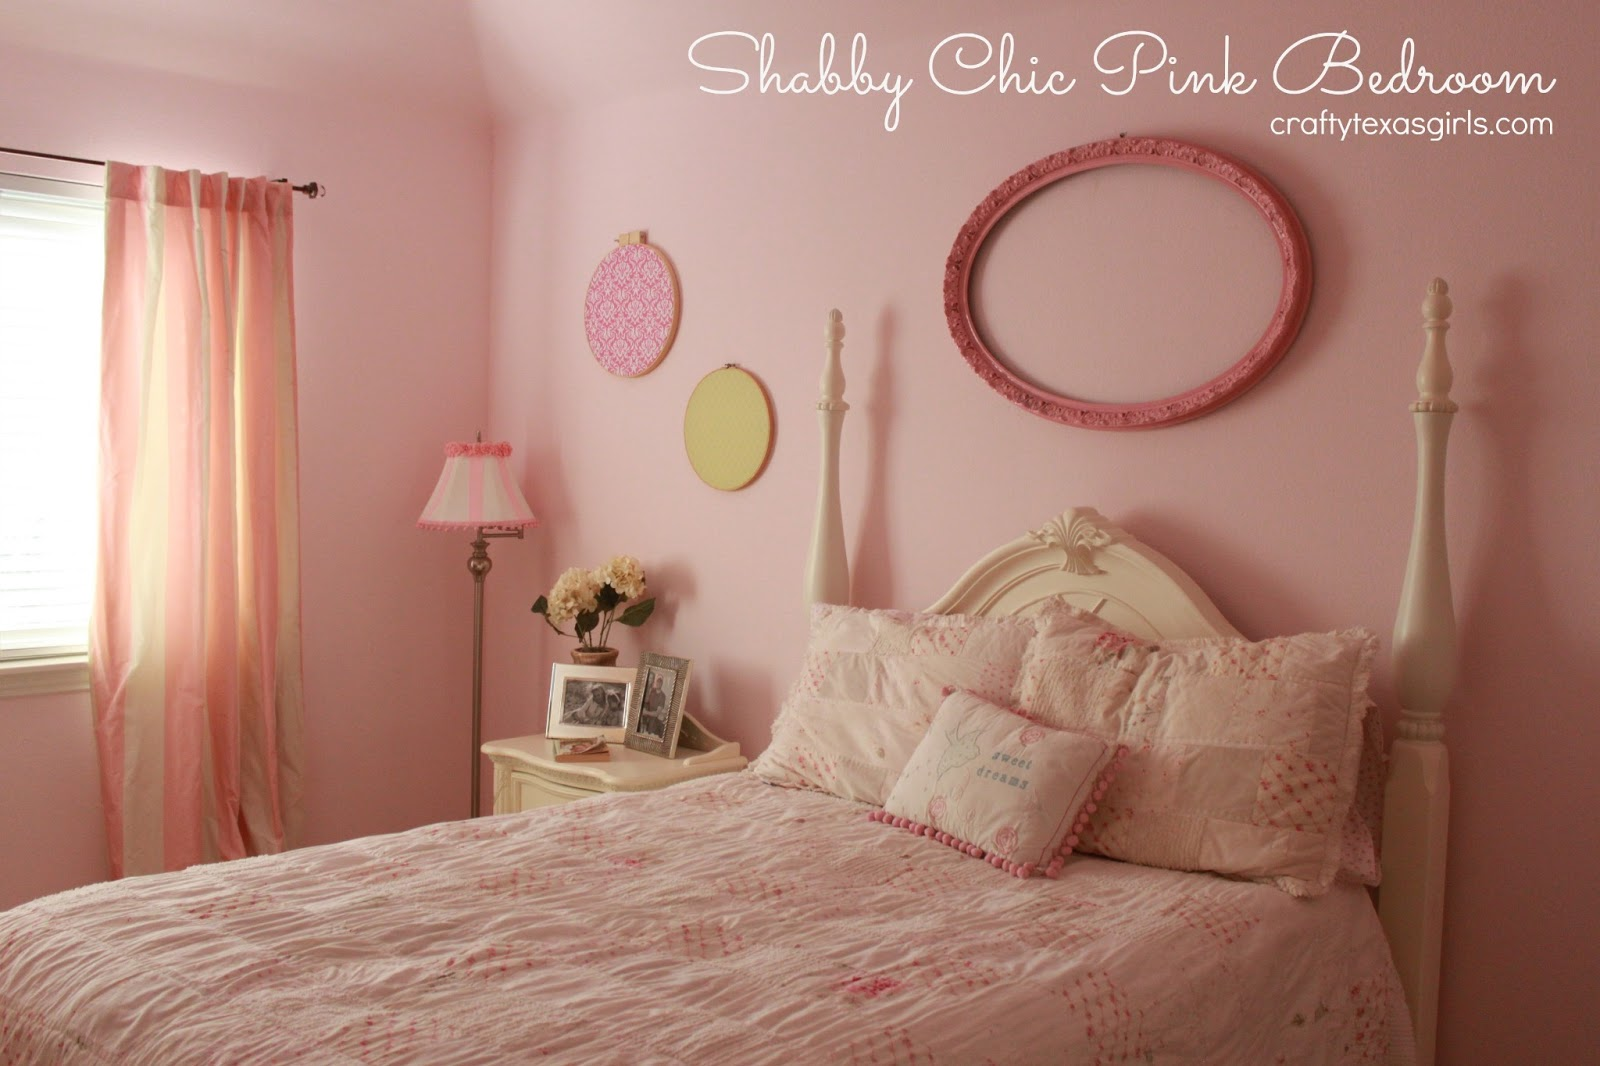 Crafty texas girls pretty in pink shabby chic bedroom - Little girls shabby chic bedroom ...